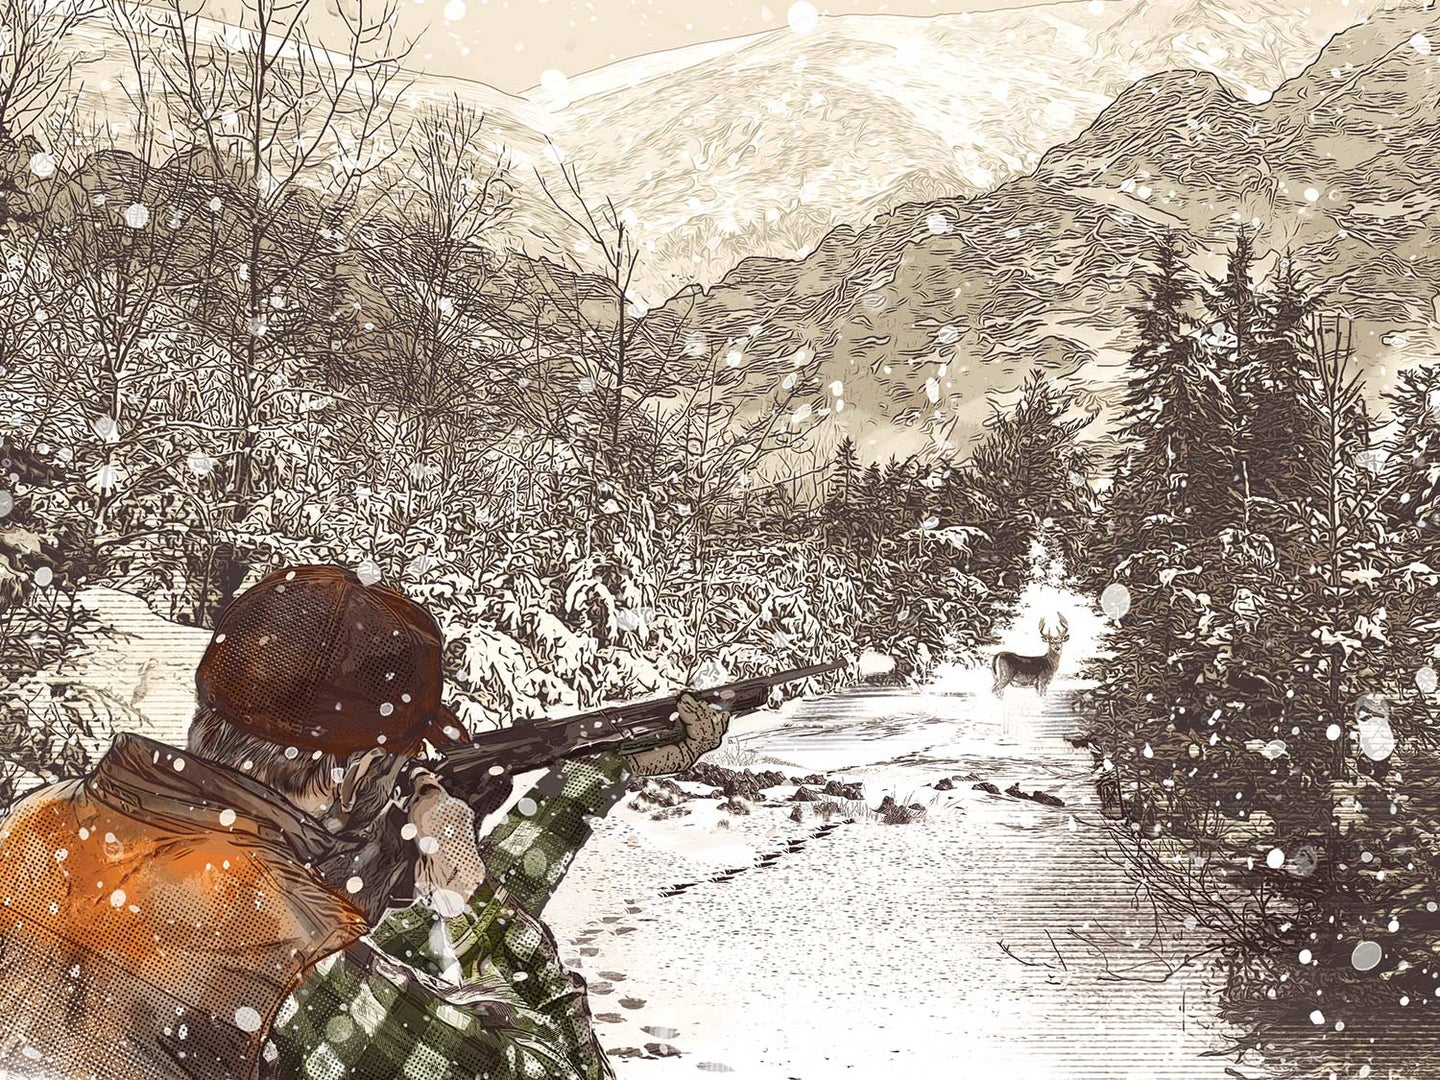 Illustration of a hunter aiming a rifle at a deer in the snow.